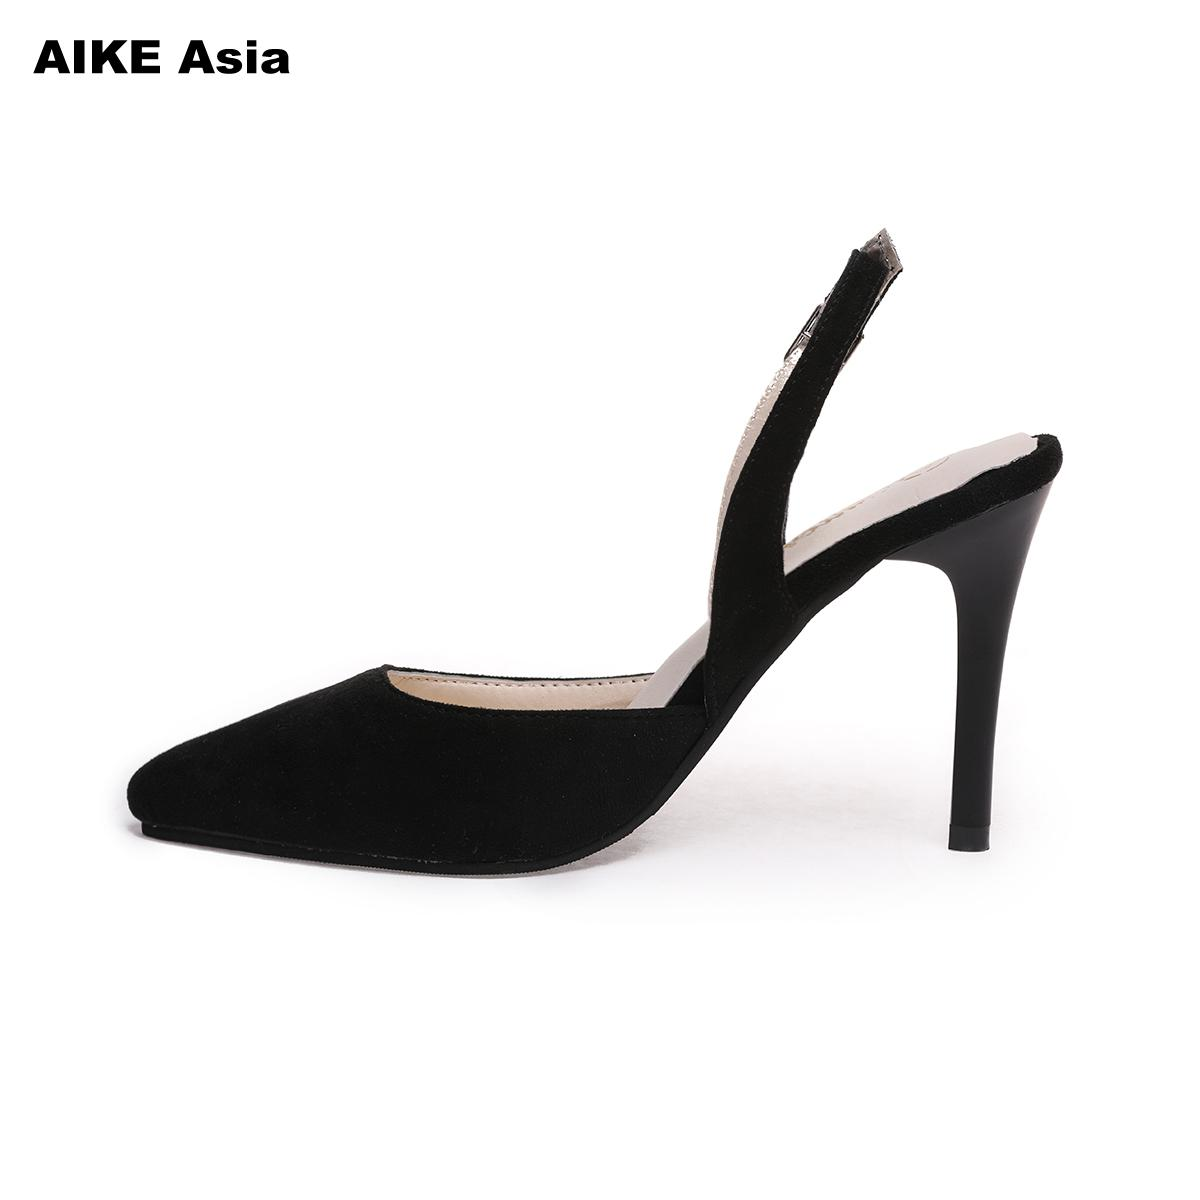 The New 2018 Sexy Thin High Heel Pointed Toe Suede Woman Pumps Fashion Slip On Party Lazy High Heel Shoes Ladies Black